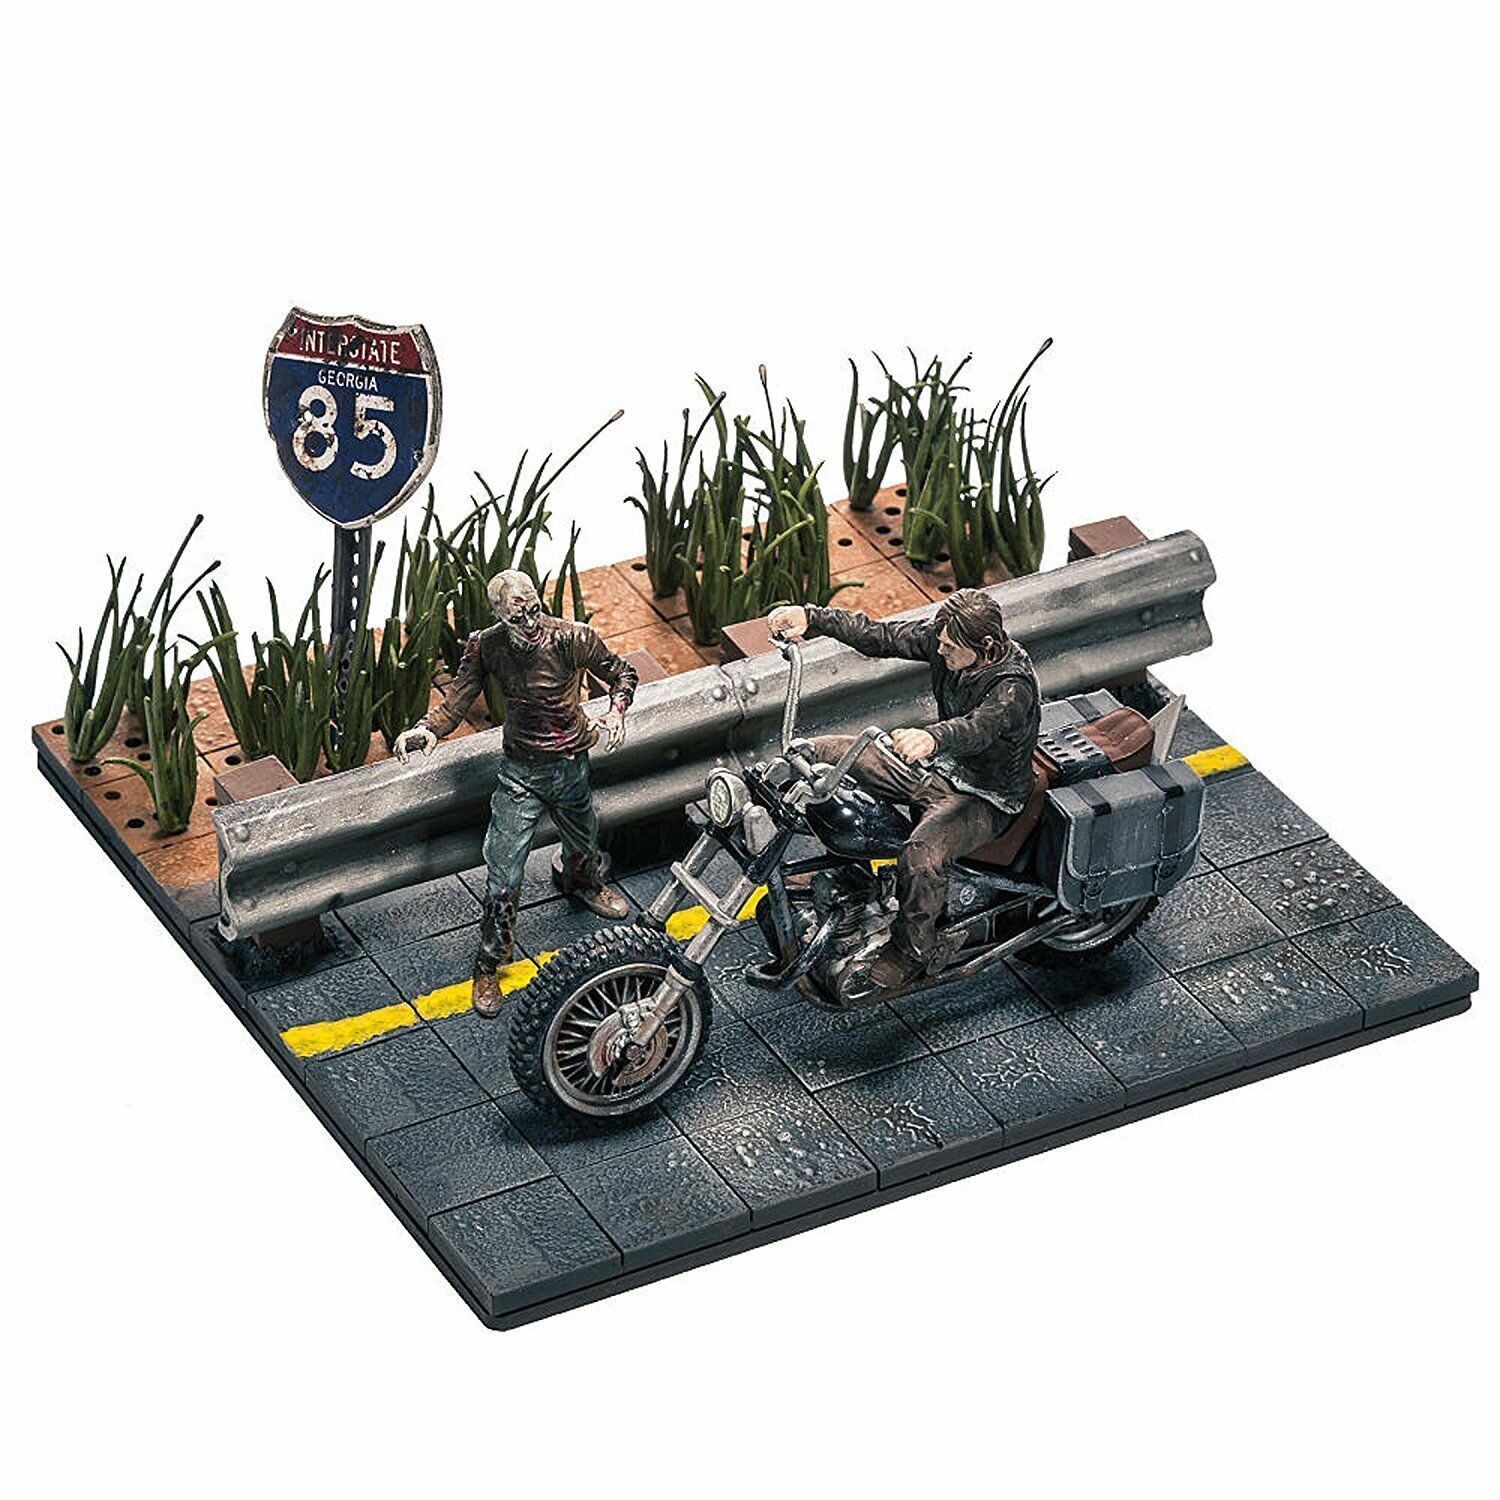 Walking Dead TV Series Toy - Construction Construction Construction Set - Daryl Dixon Figure with Chopper 13ae4c